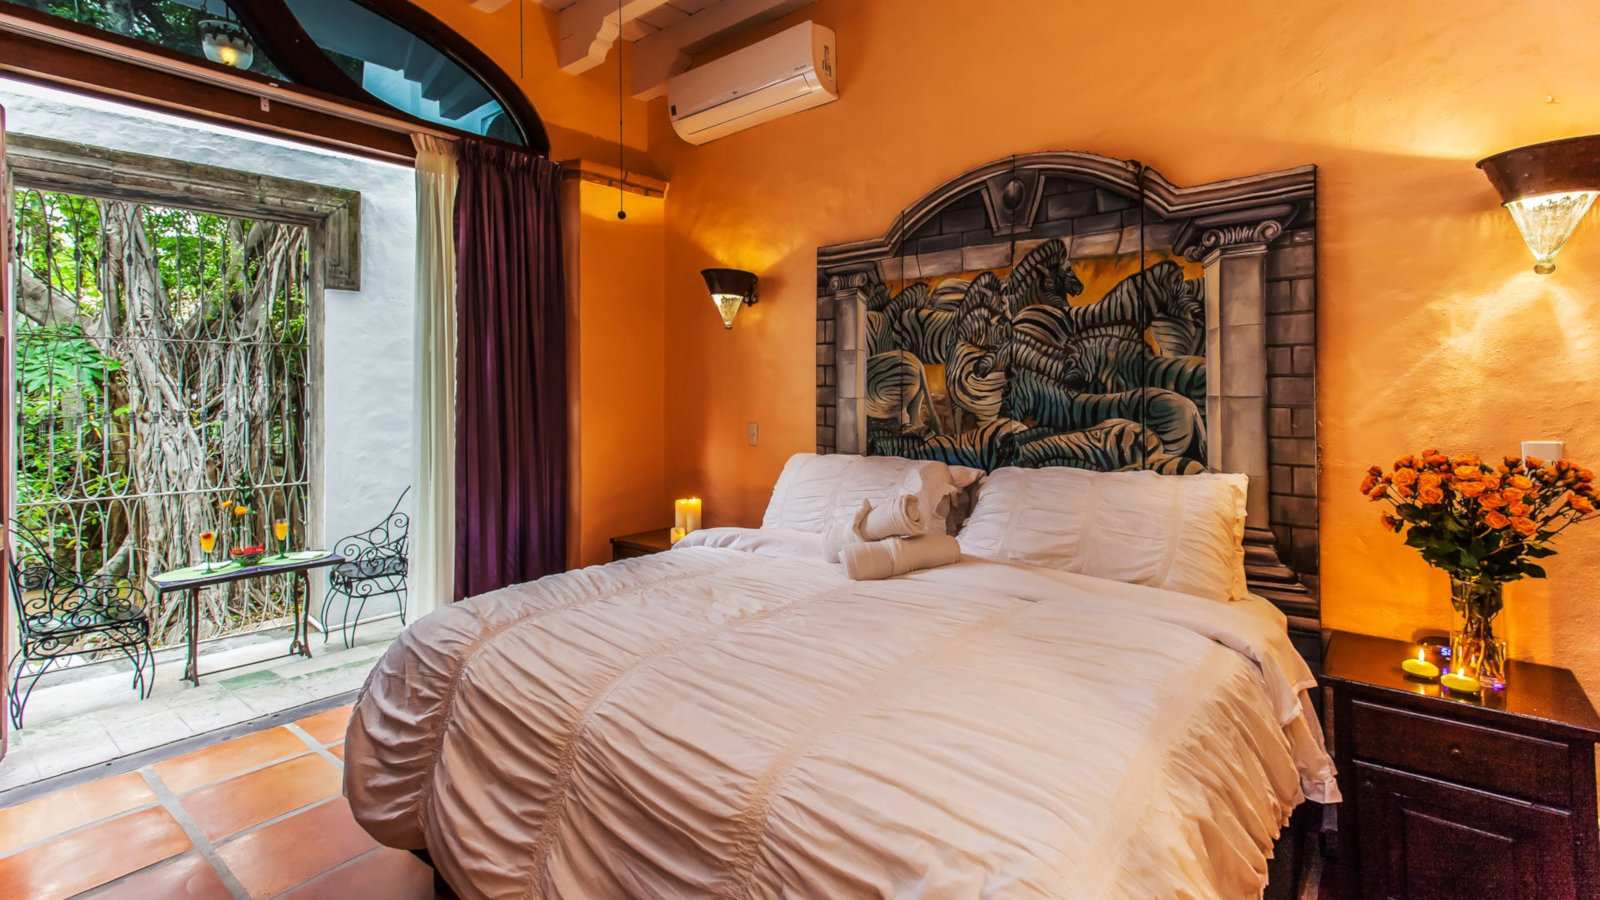 Gay Puerto Vallarta - for true romance stay at the stunning Garlands del Rio boutique hotel.